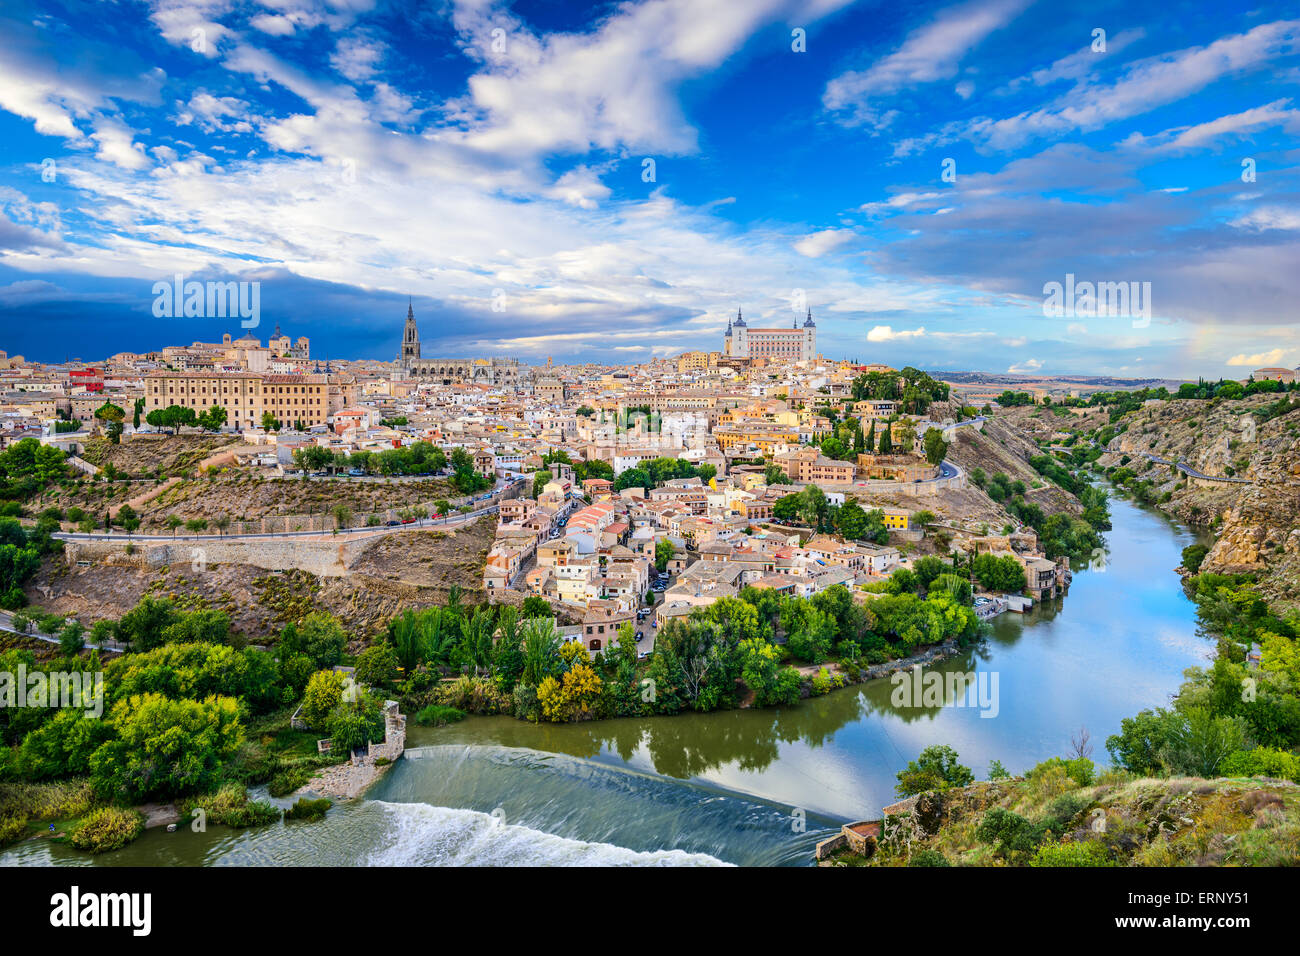 Toledo, Spain old town skyline on the Tagus River. - Stock Image